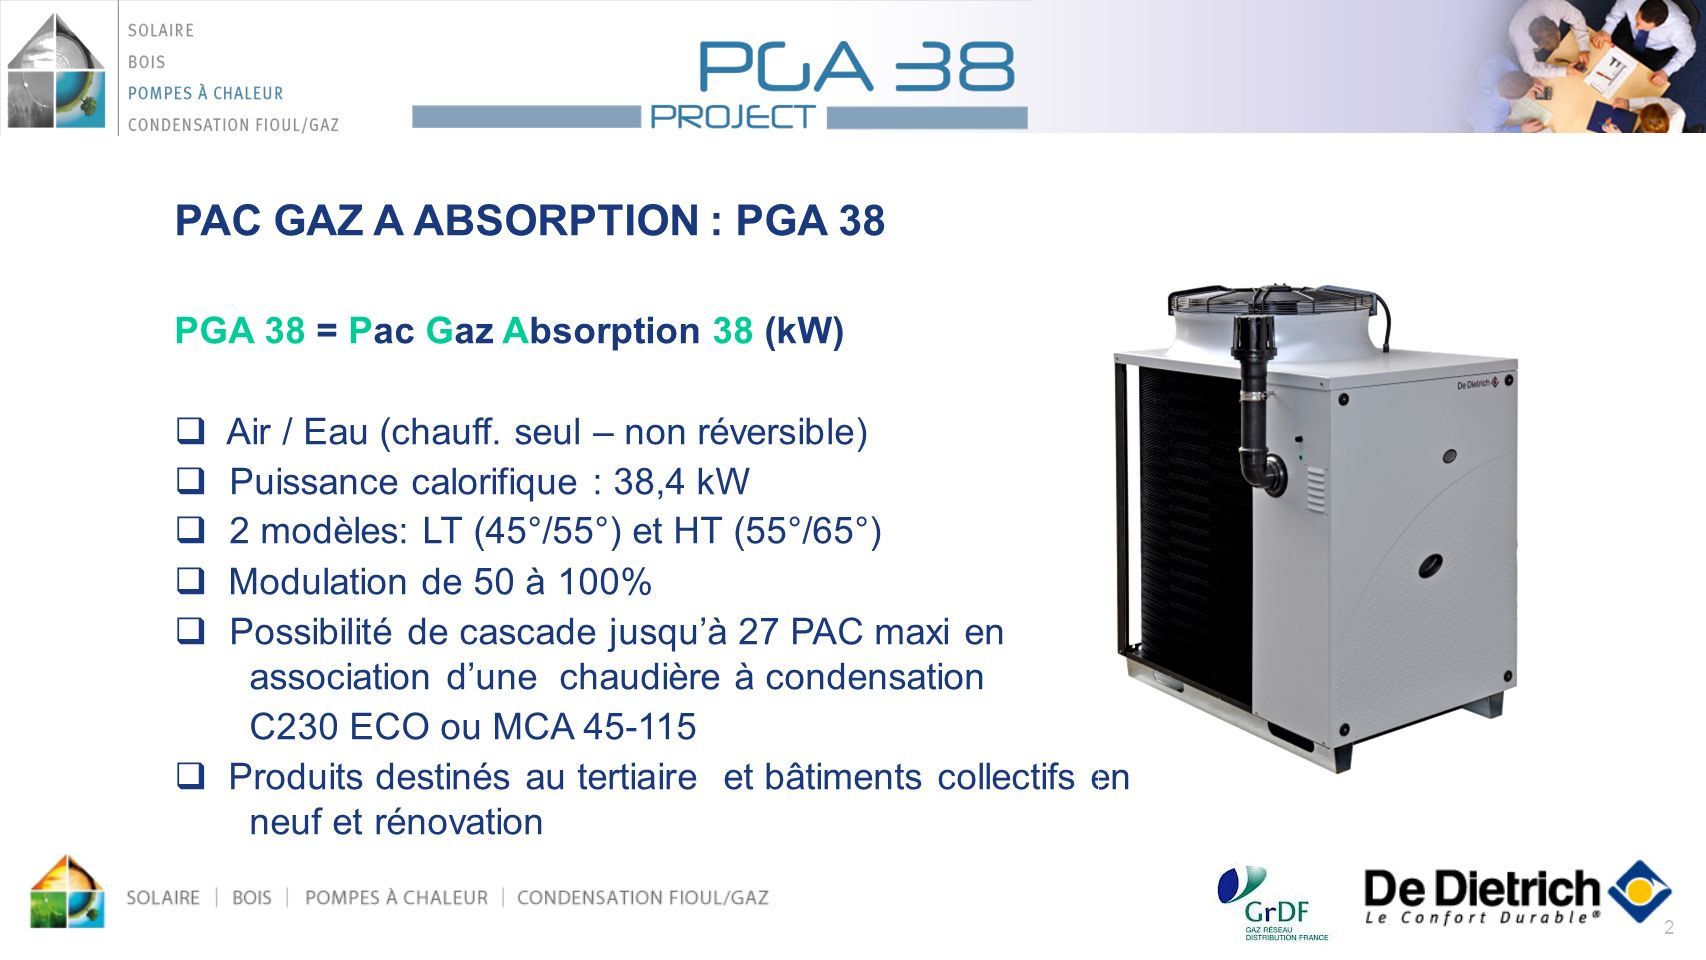 PAC GAZ A ABSORPTION : PGA 38